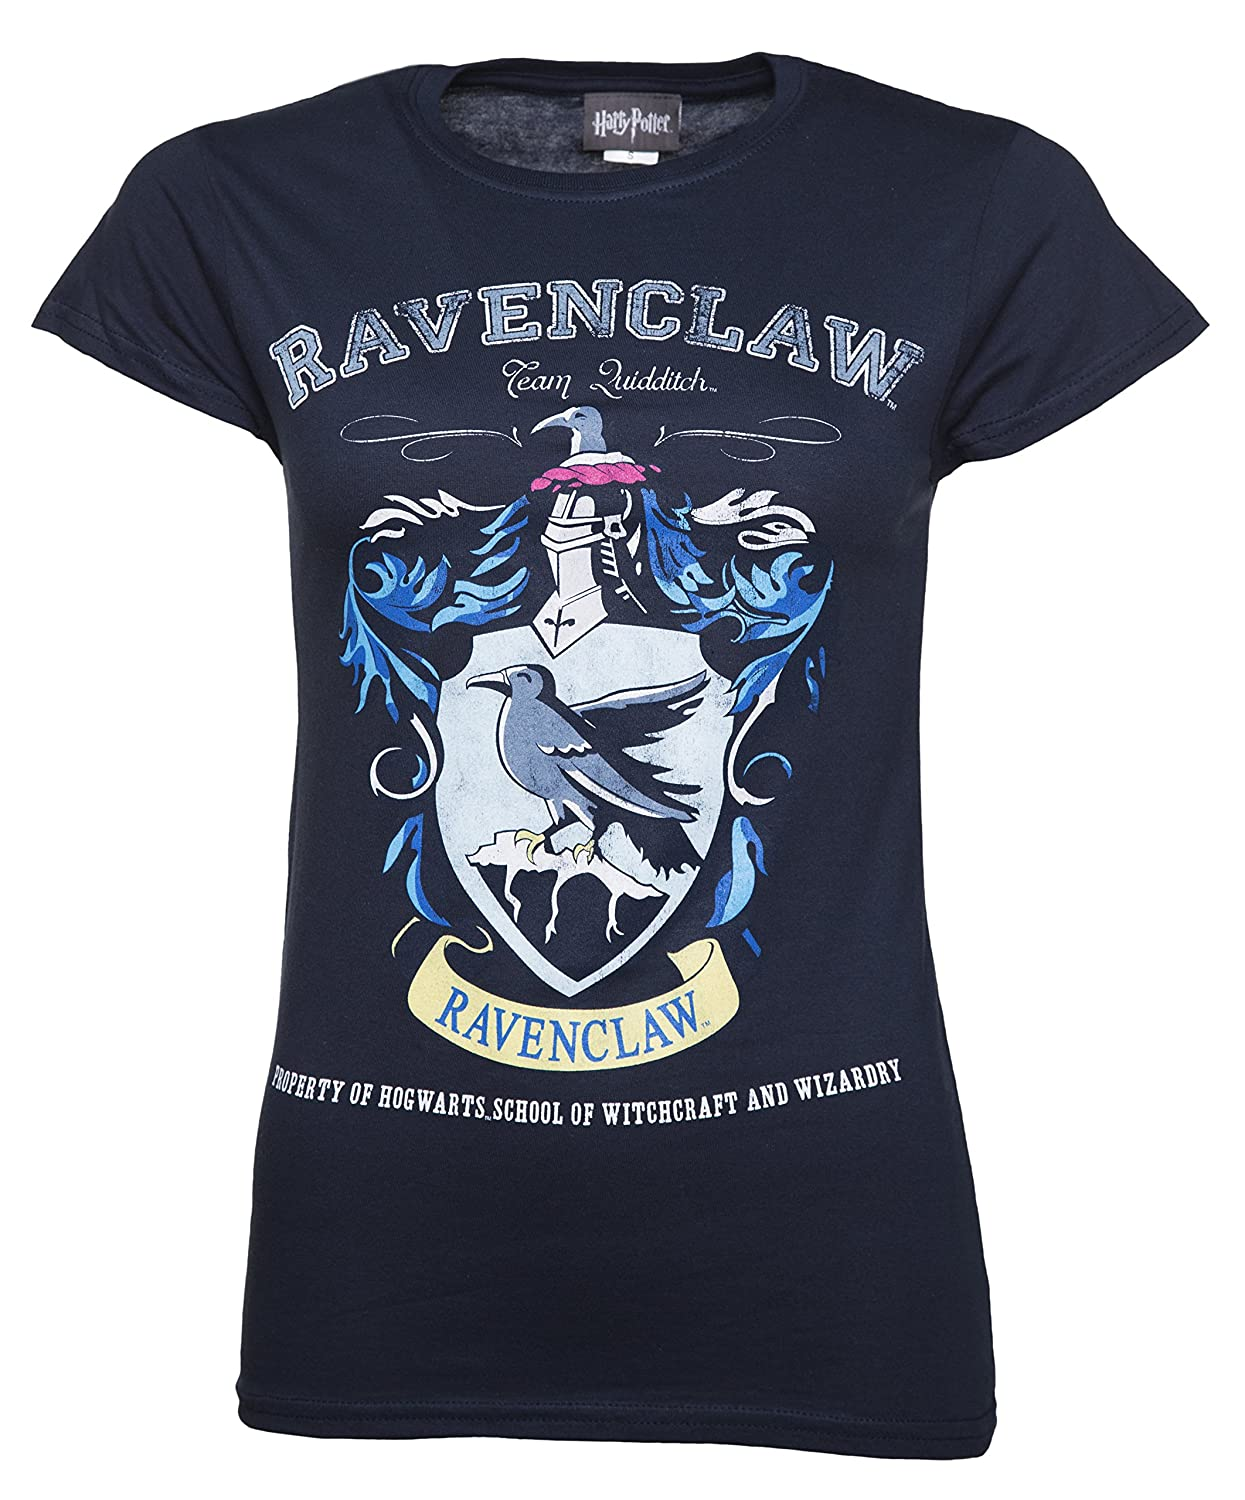 DCI Womens Navy Harry Potter Ravenclaw Team Quidditch T Shirt CID